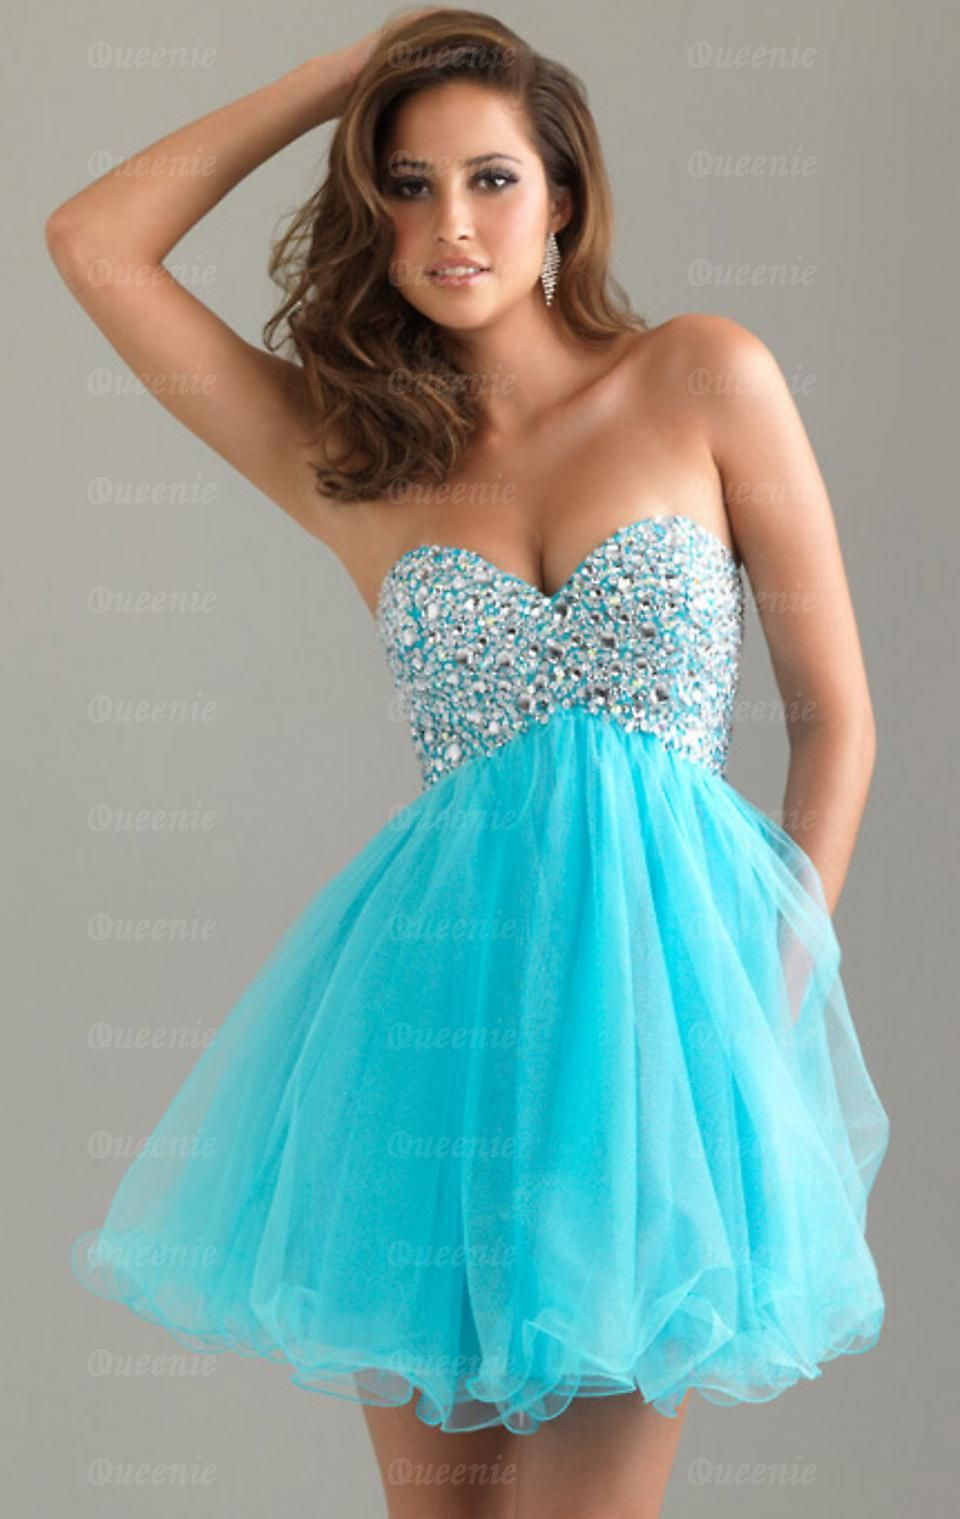 Images Of Dresses Google Search Dress And Earrings Pinterest